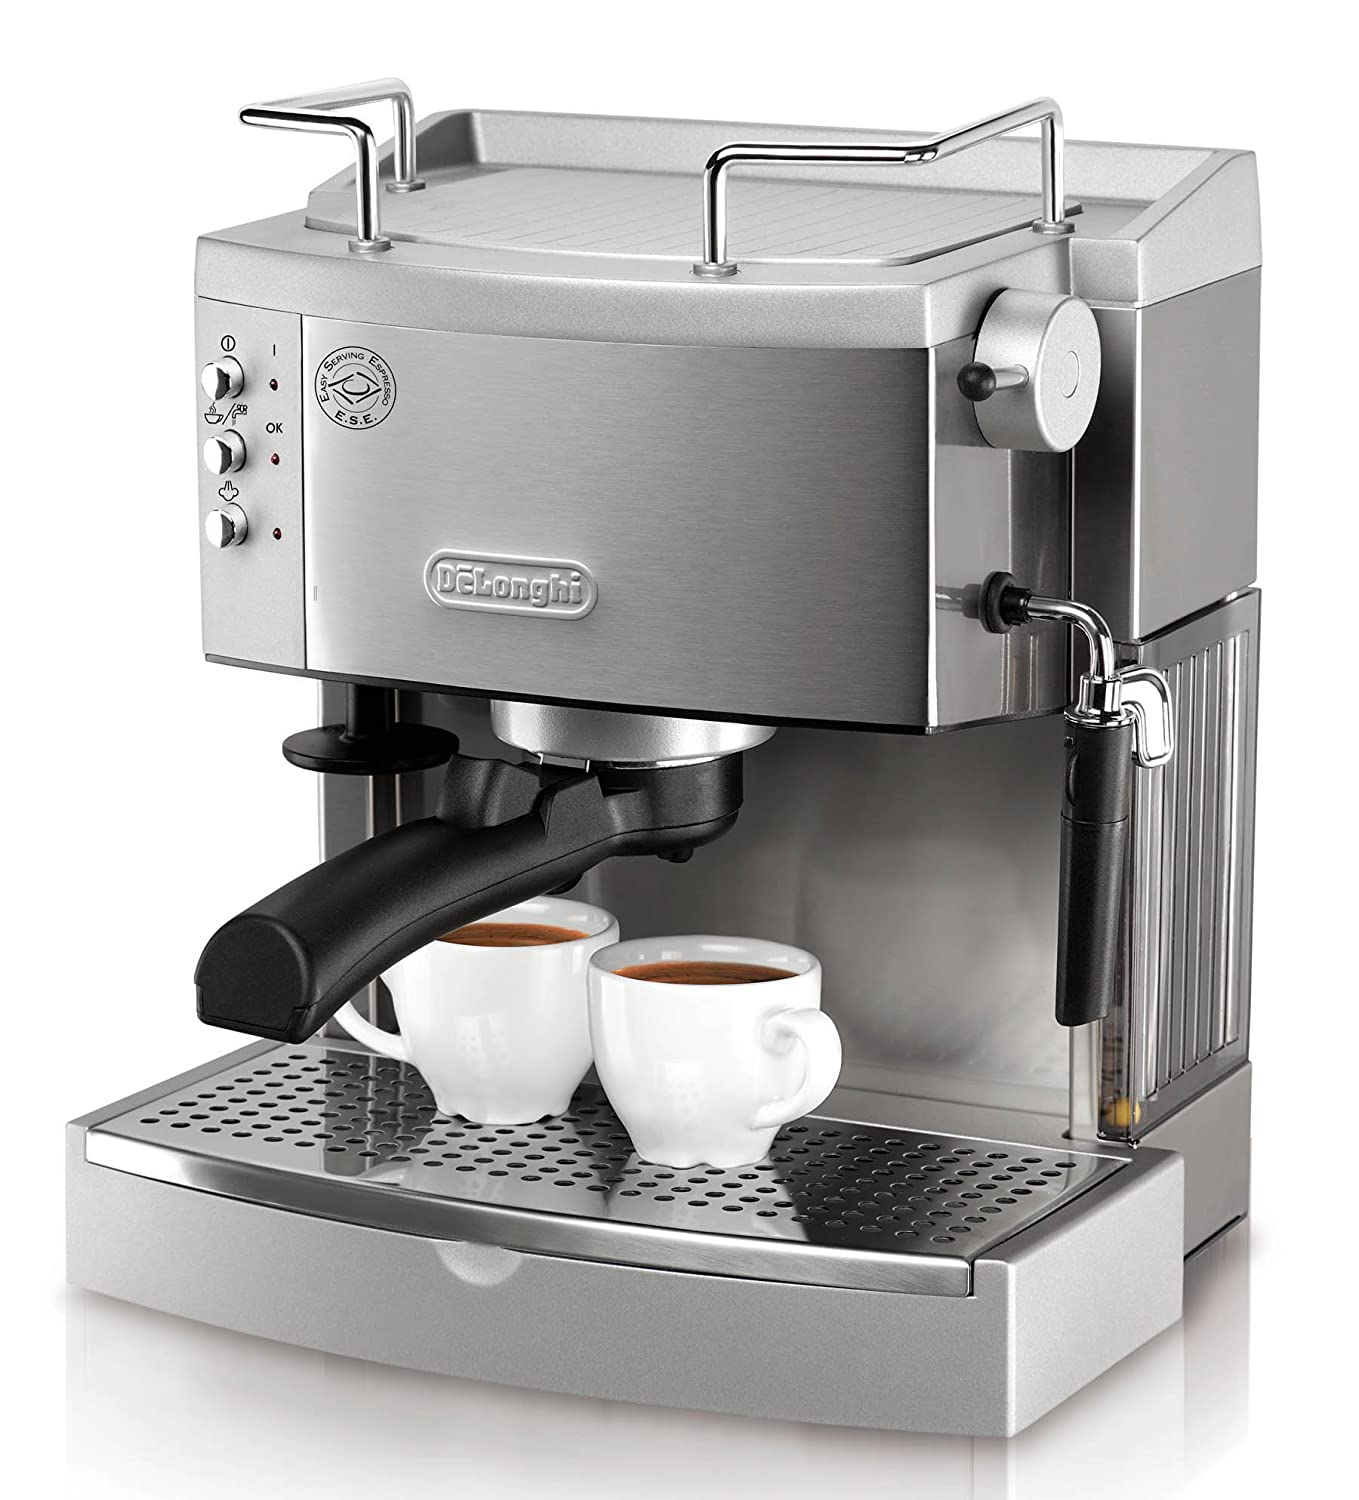 Delonghi espresso machine price